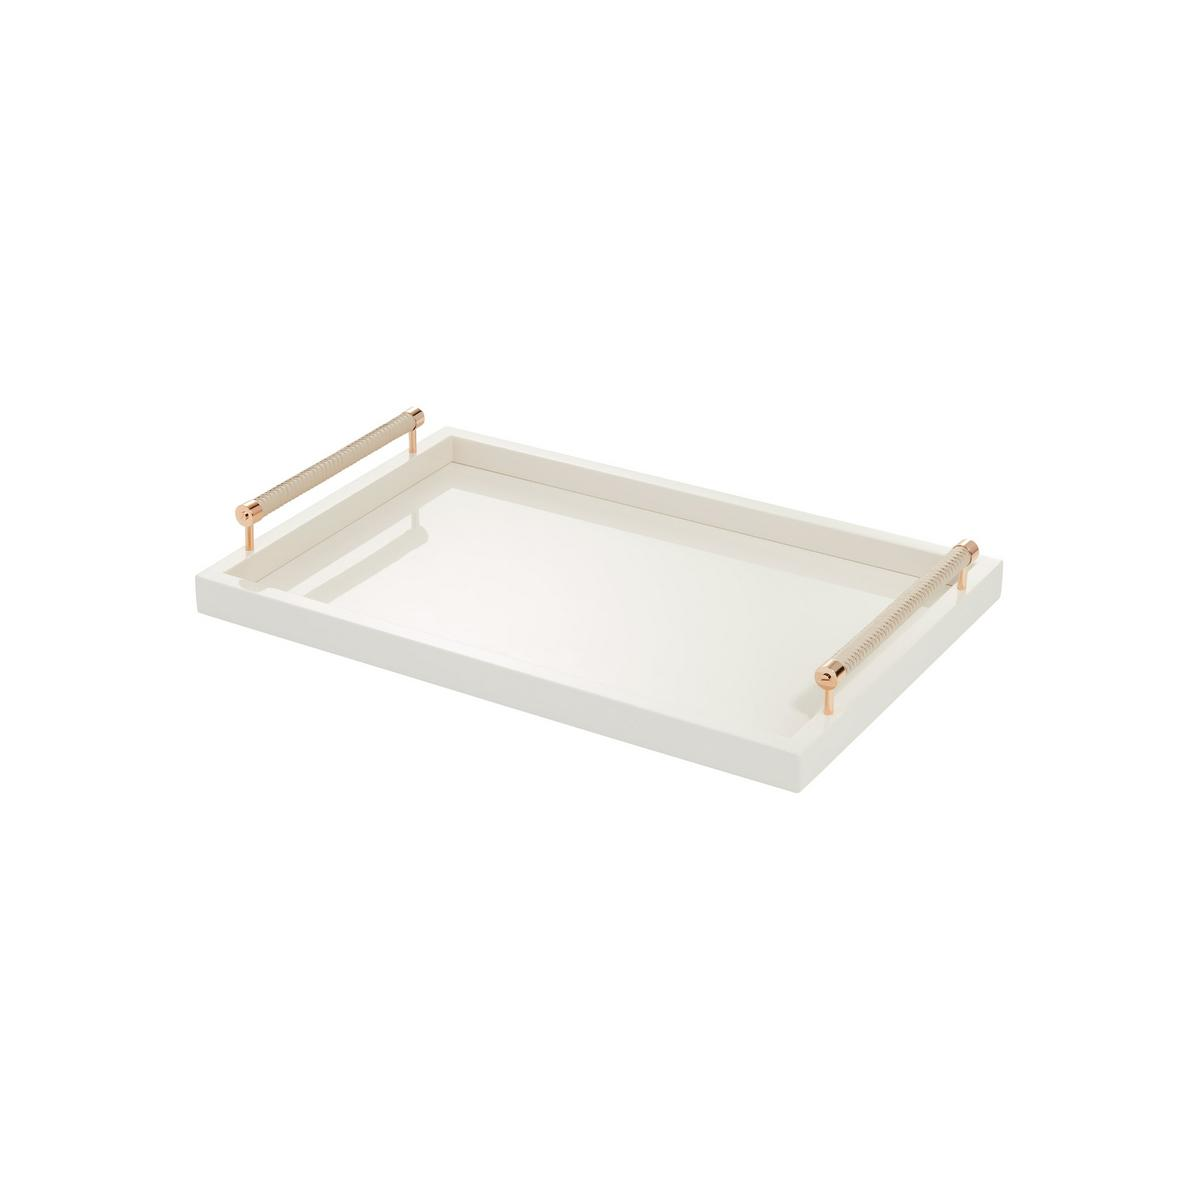 Graphic Tray Handcrafted From Ivory And: Riviere Lacquered Trays With Leather Handles